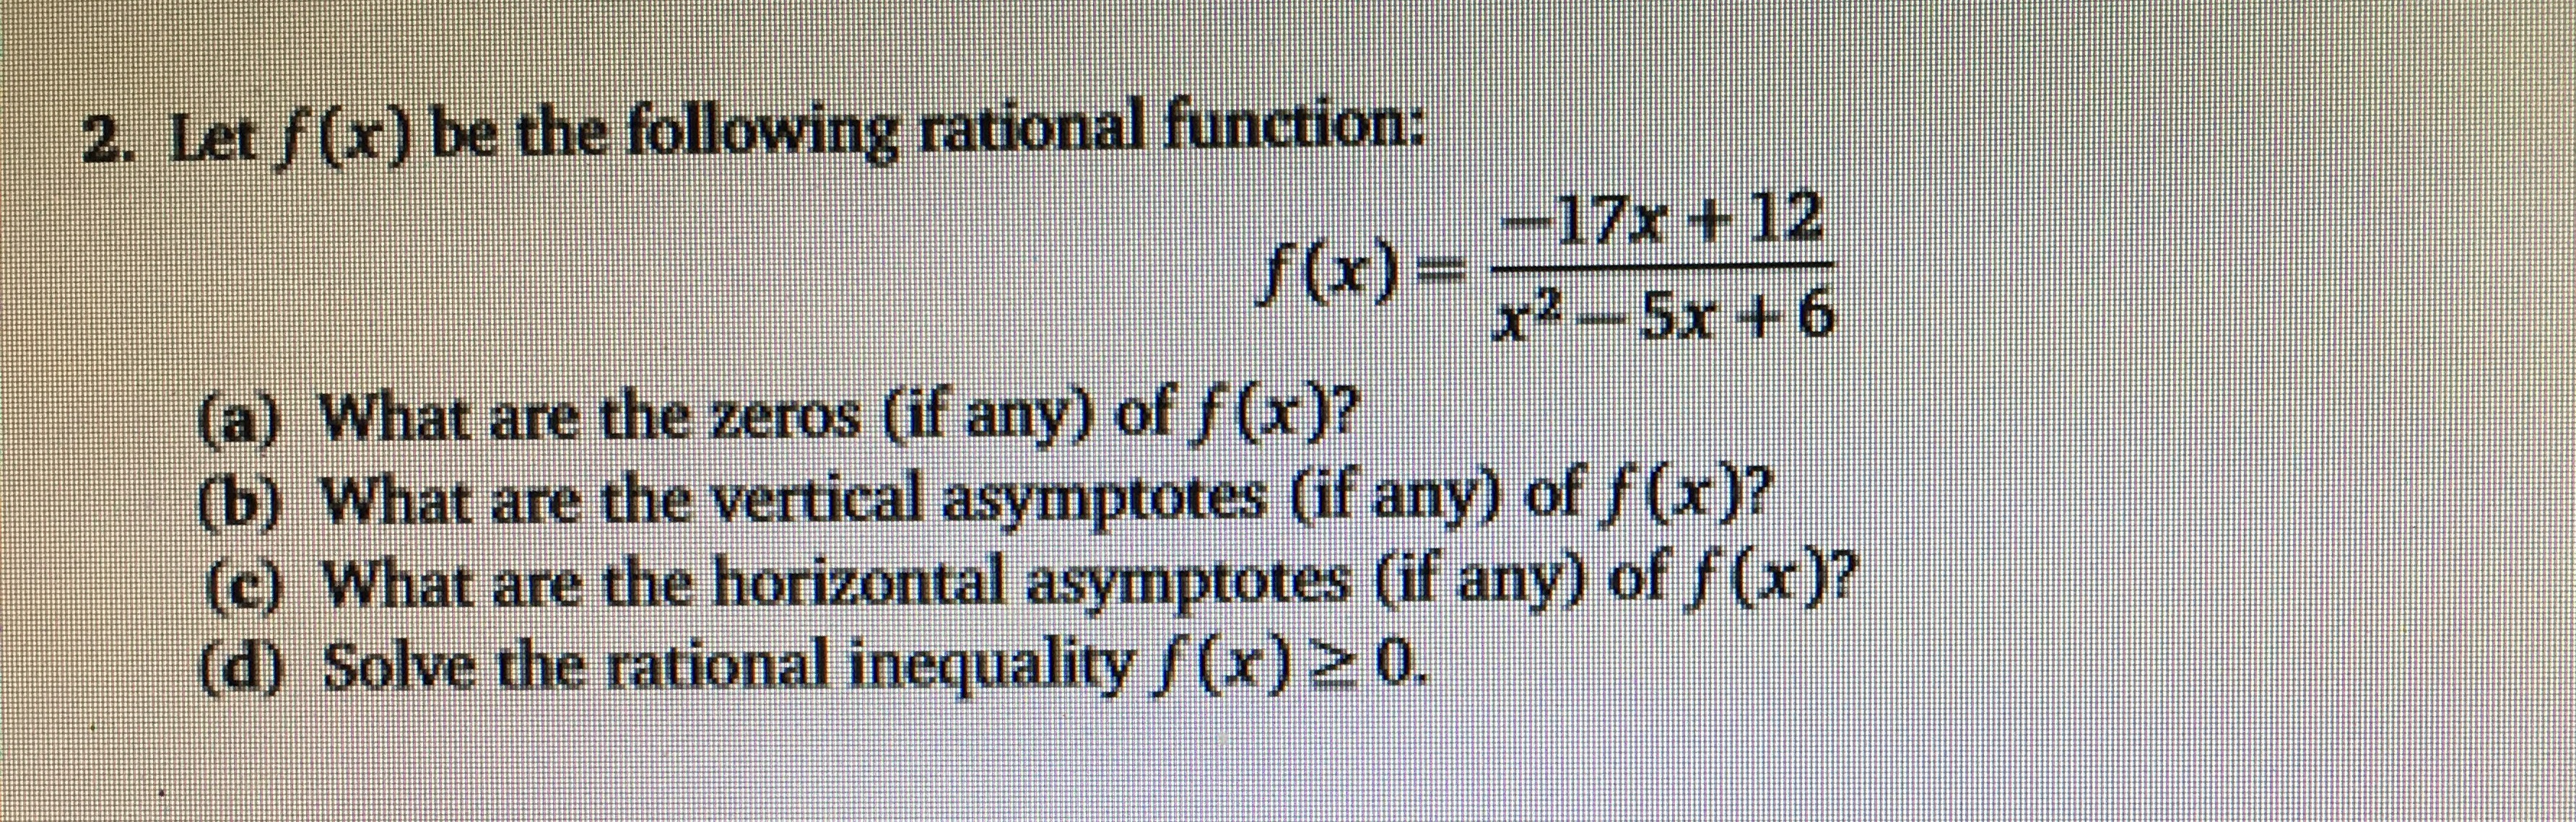 2. Let f(x) be the following rational function: -17x + 12 (a) What are the zeros (if any) of f(x)? (b) What are the vertical asymptotes (if any) of f(x)? (c) What are the horizontal asymptotes (if any) of /(x)? (d) Solve the rational inequality f(x) 2 0. 9+ XS (x)f